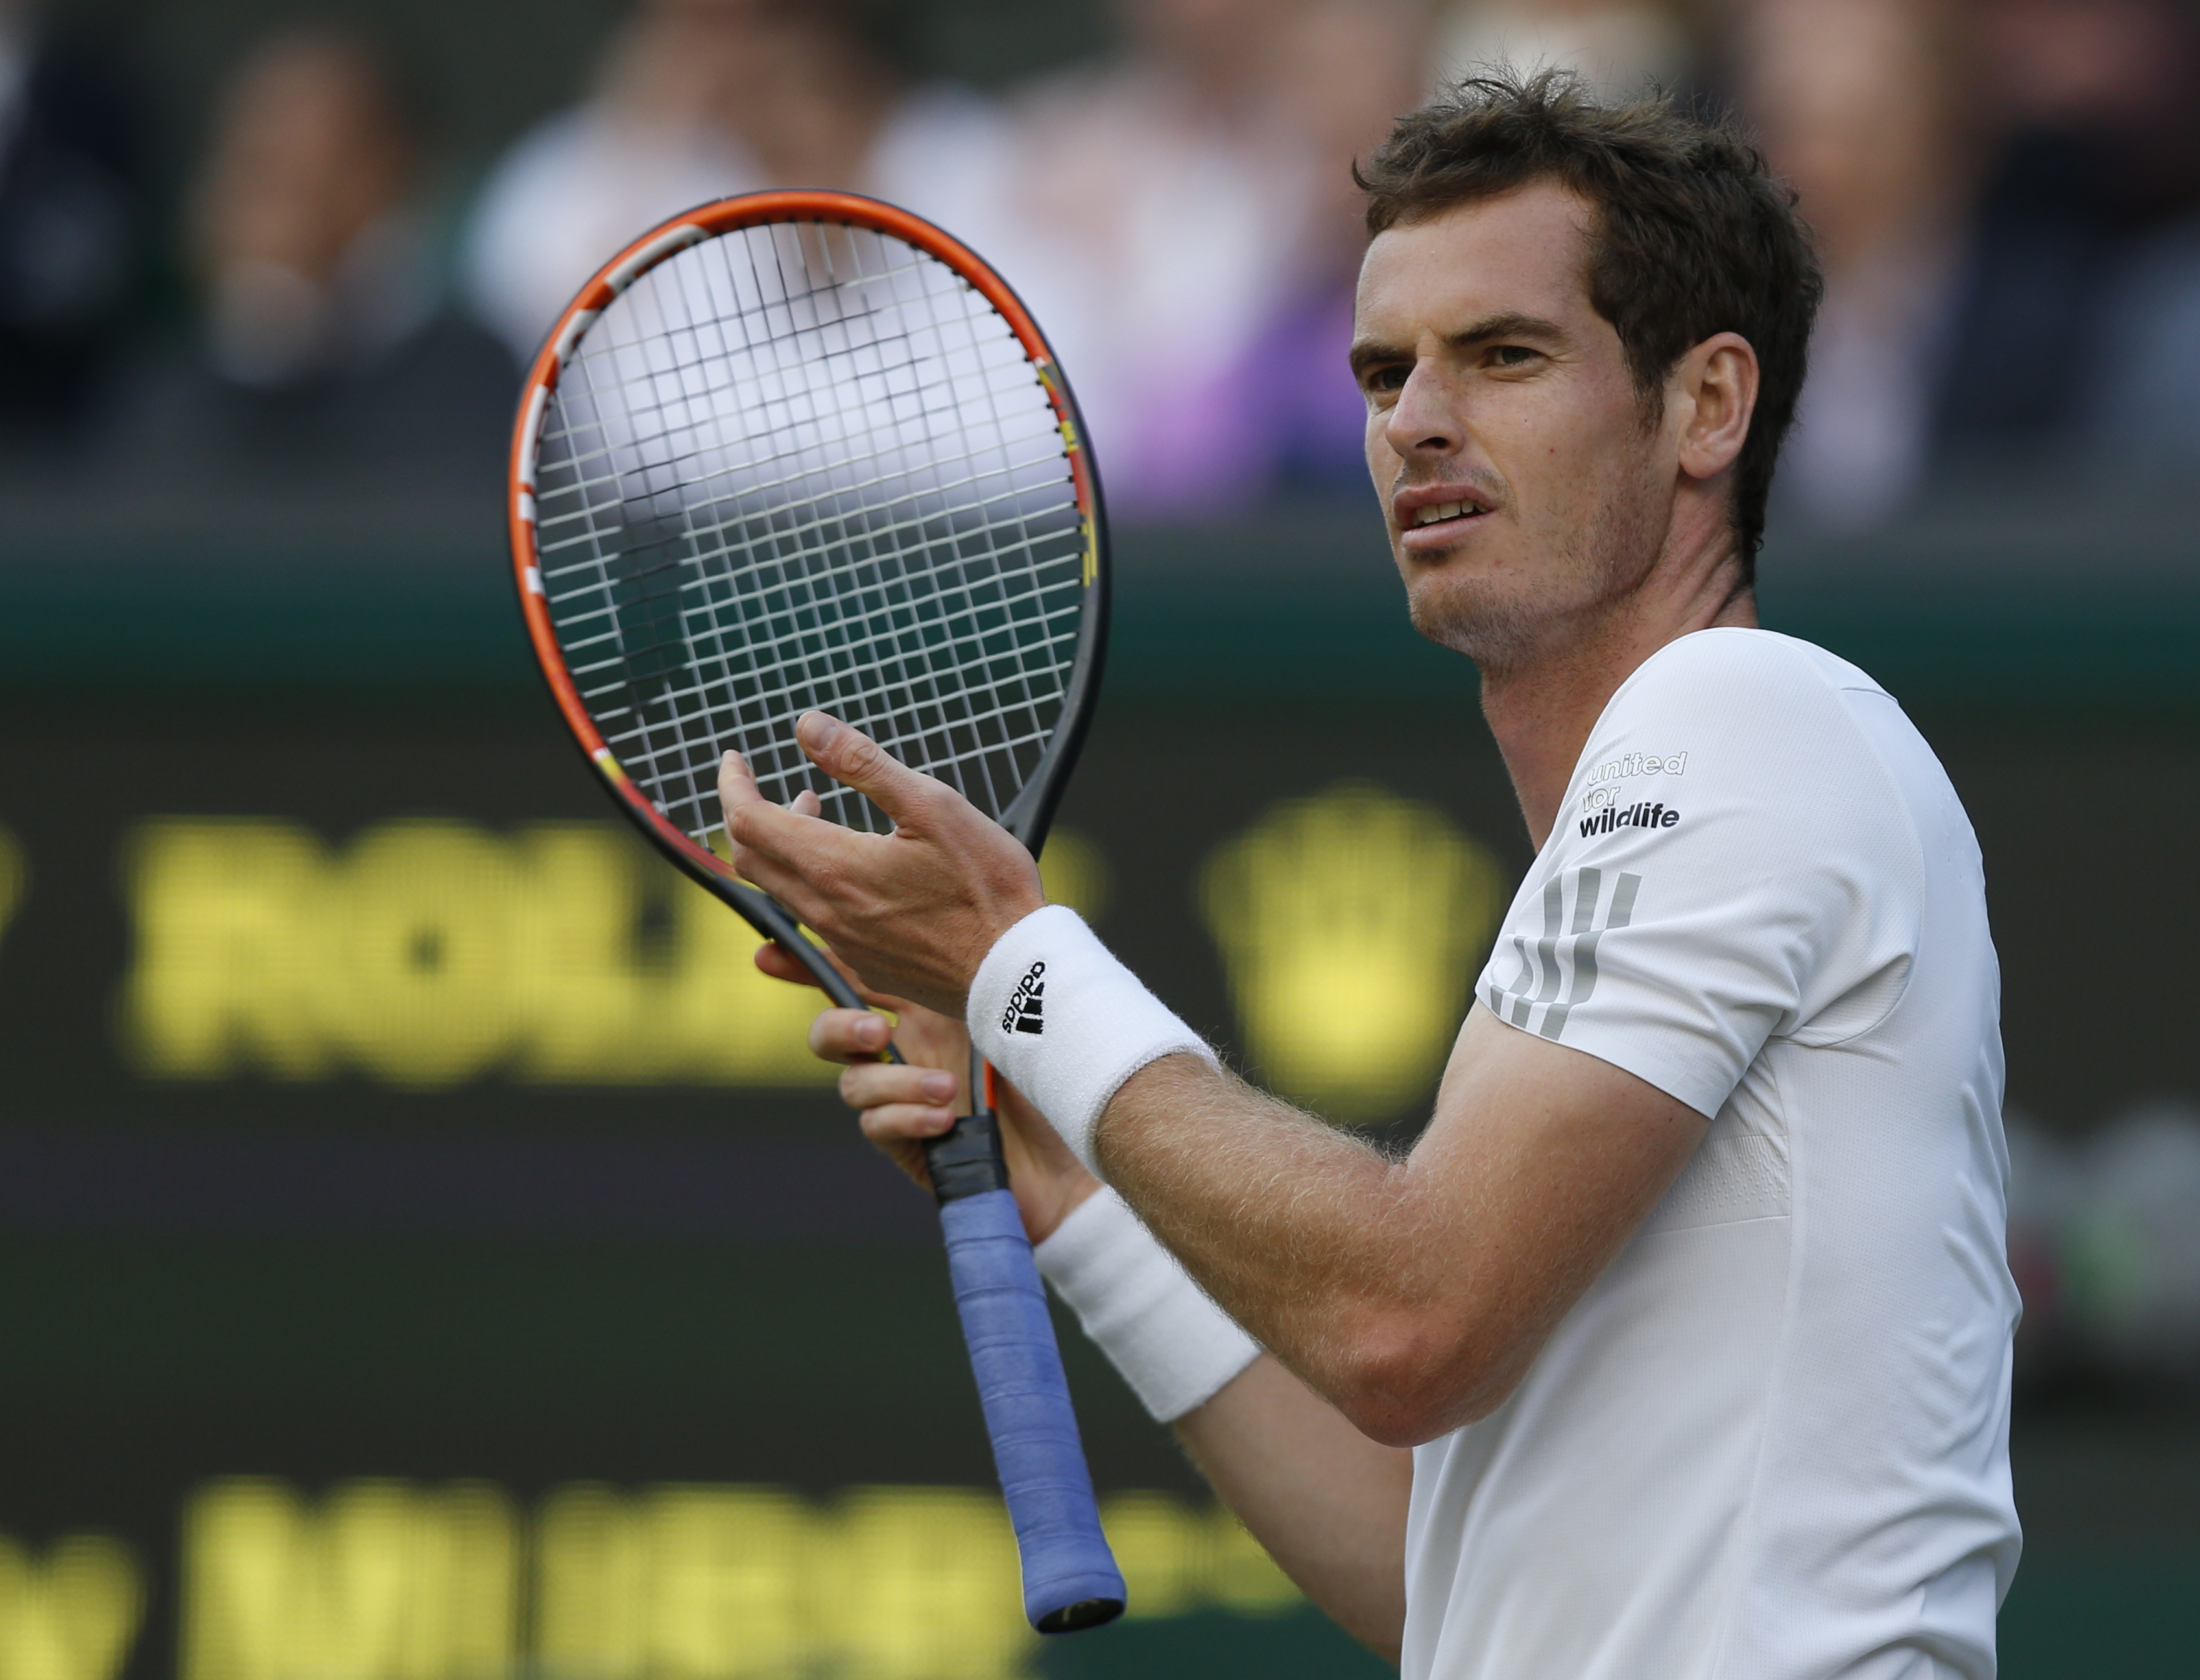 In this Friday, June 27, 2014, file photo, Andy Murray of Britain gestures between points as he plays Roberto Bautista Agut of Spain in their men's singles match at the All England Lawn Tennis Championships in Wimbledon.